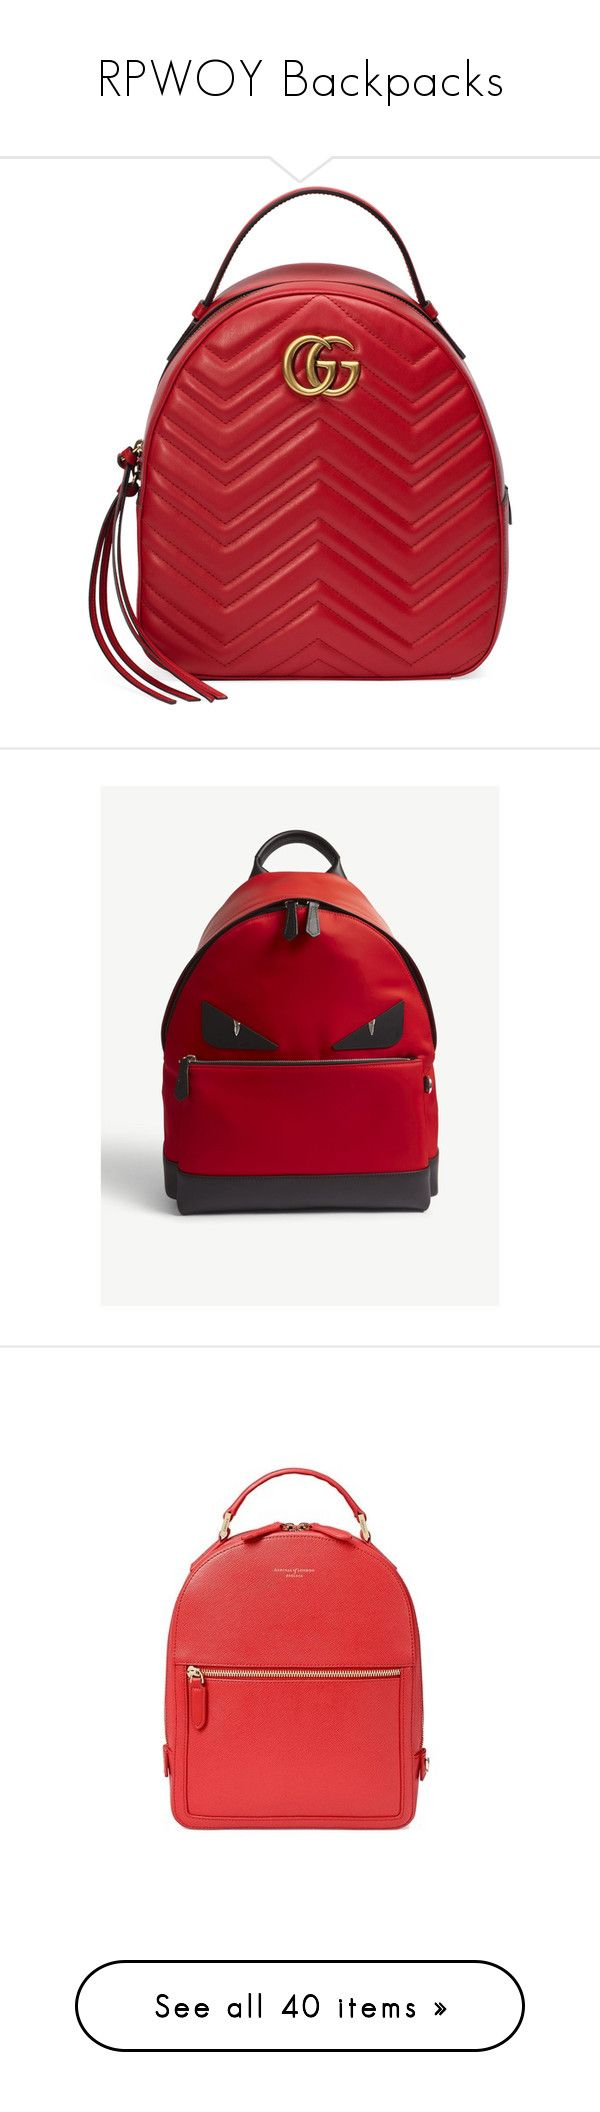 """""""RPWOY Backpacks"""" by mystic-13 on Polyvore featuring bags, backpacks, backpack, red, studded bag, red backpack, studded backpacks, versace bags, versace backpack and gucci bag"""